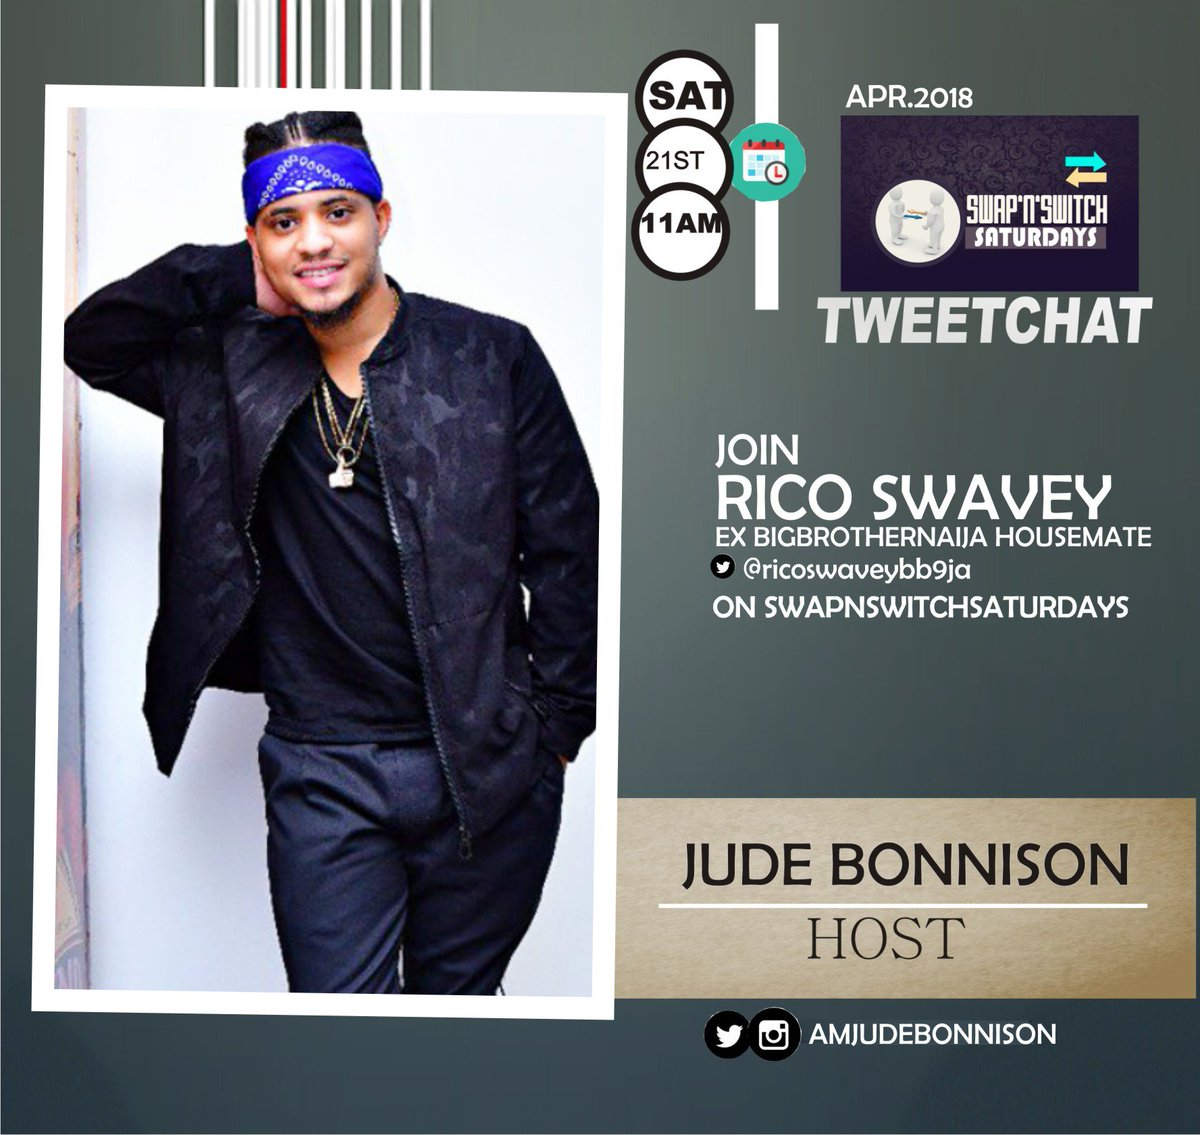 Ok Twitter, get ready to ask me anything tomorrow. #AskRico and I will answer. #RicoNation #bbnaija #swapnswitchsaturdays <br>http://pic.twitter.com/LjXUxnzIa9